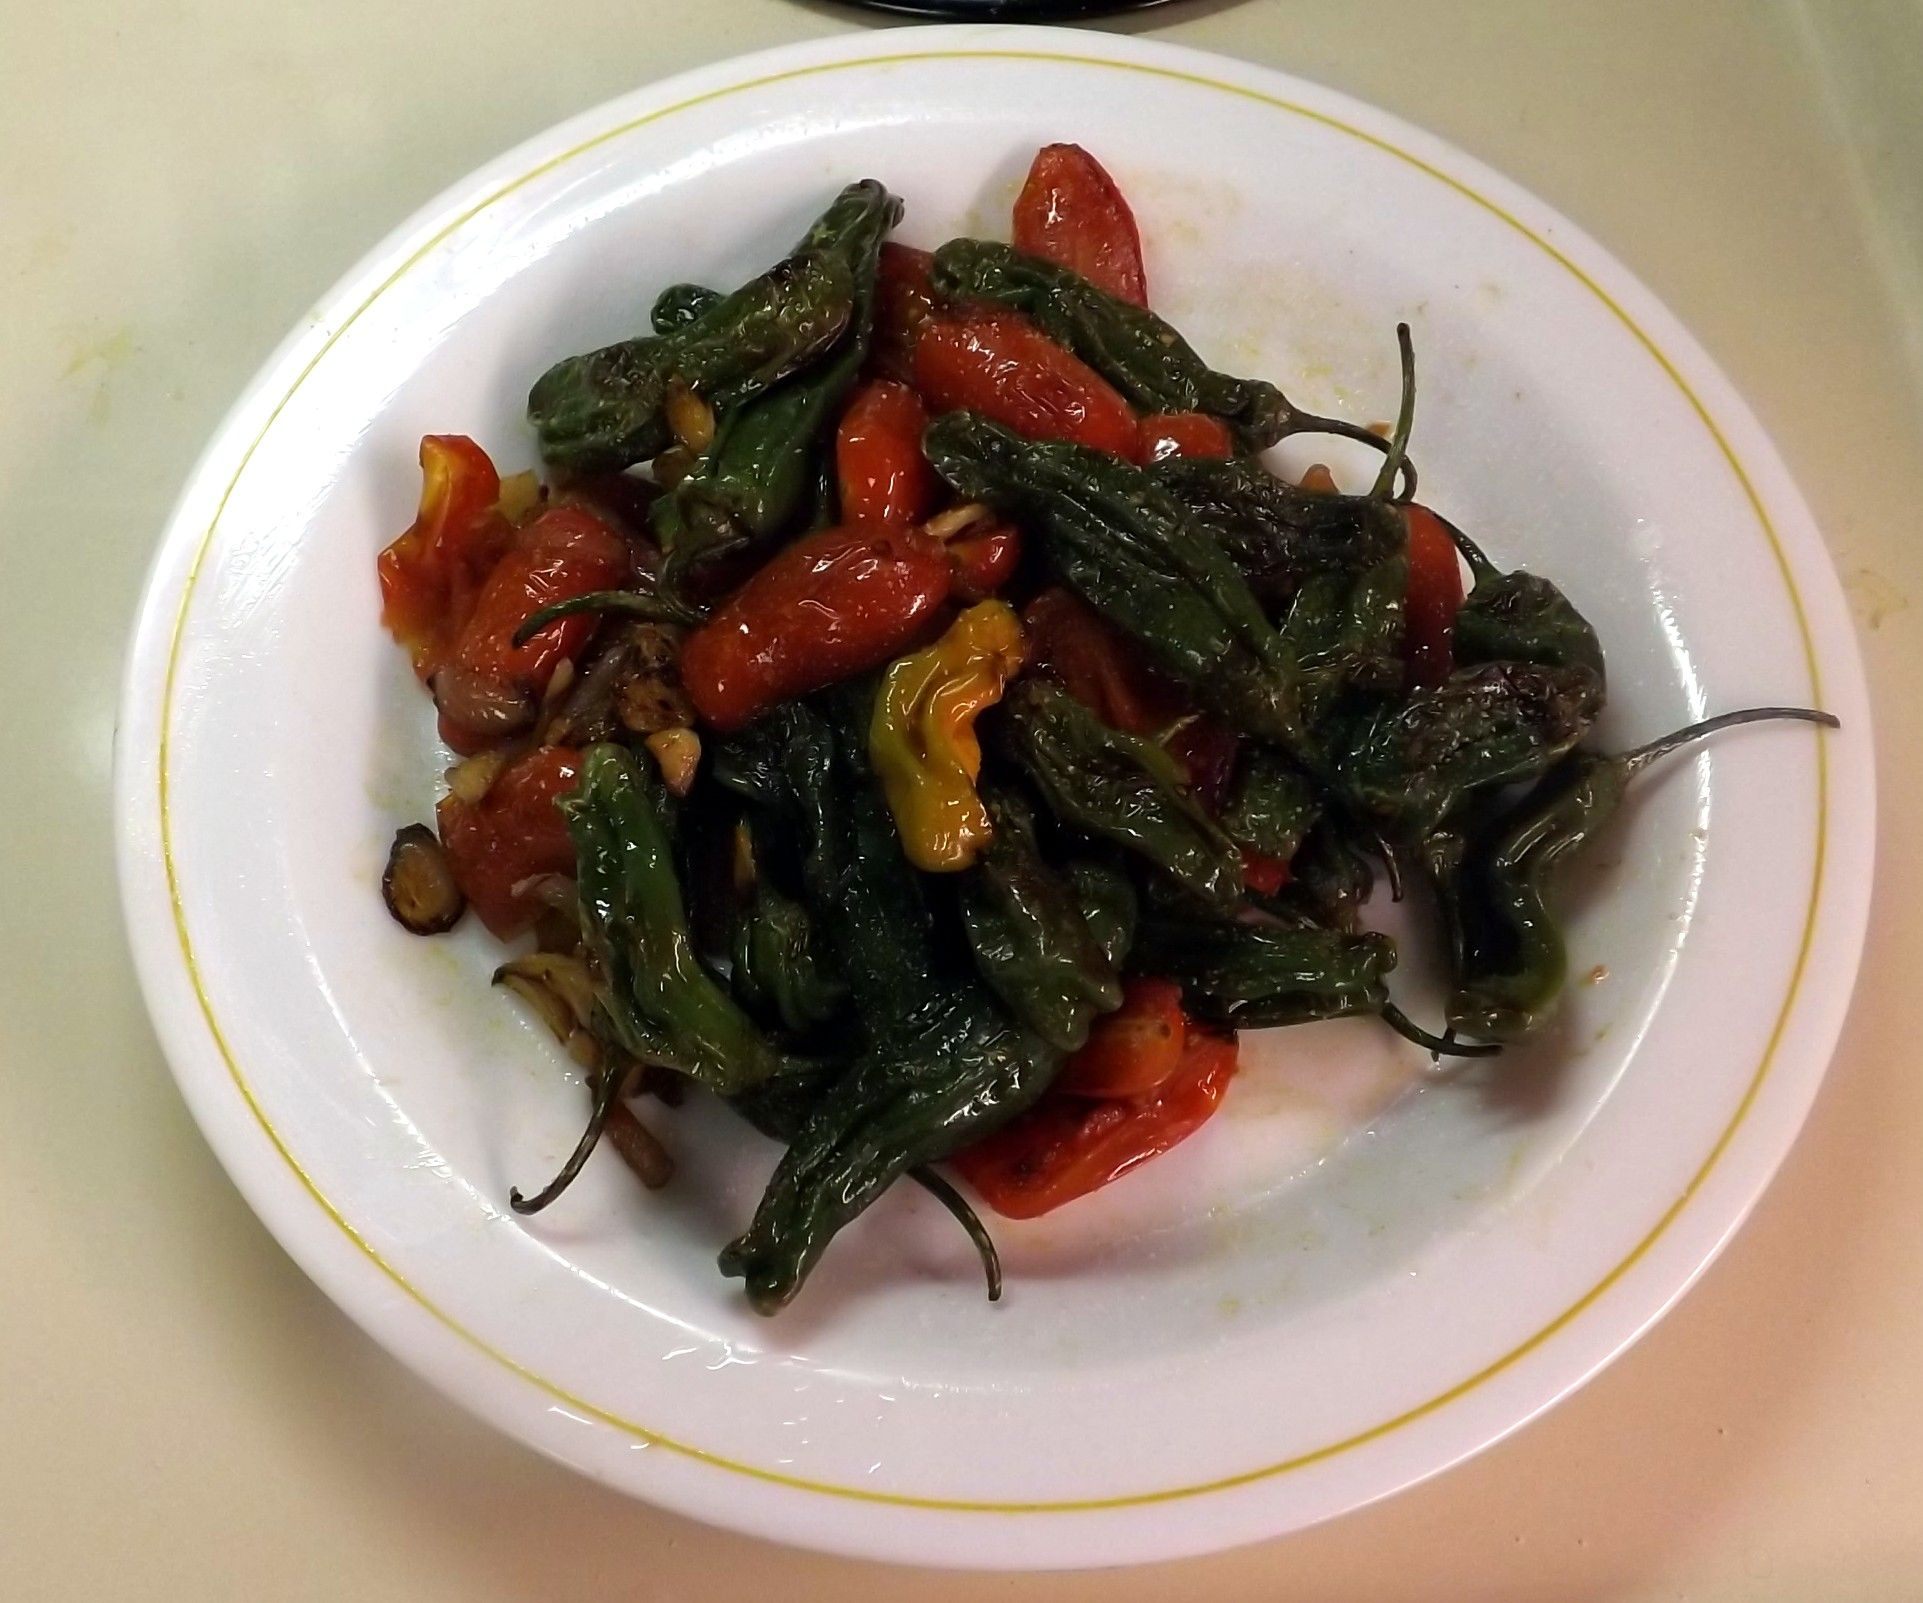 SAUTEED SHISHITO PEPPERS WITH MINI TOMATOES